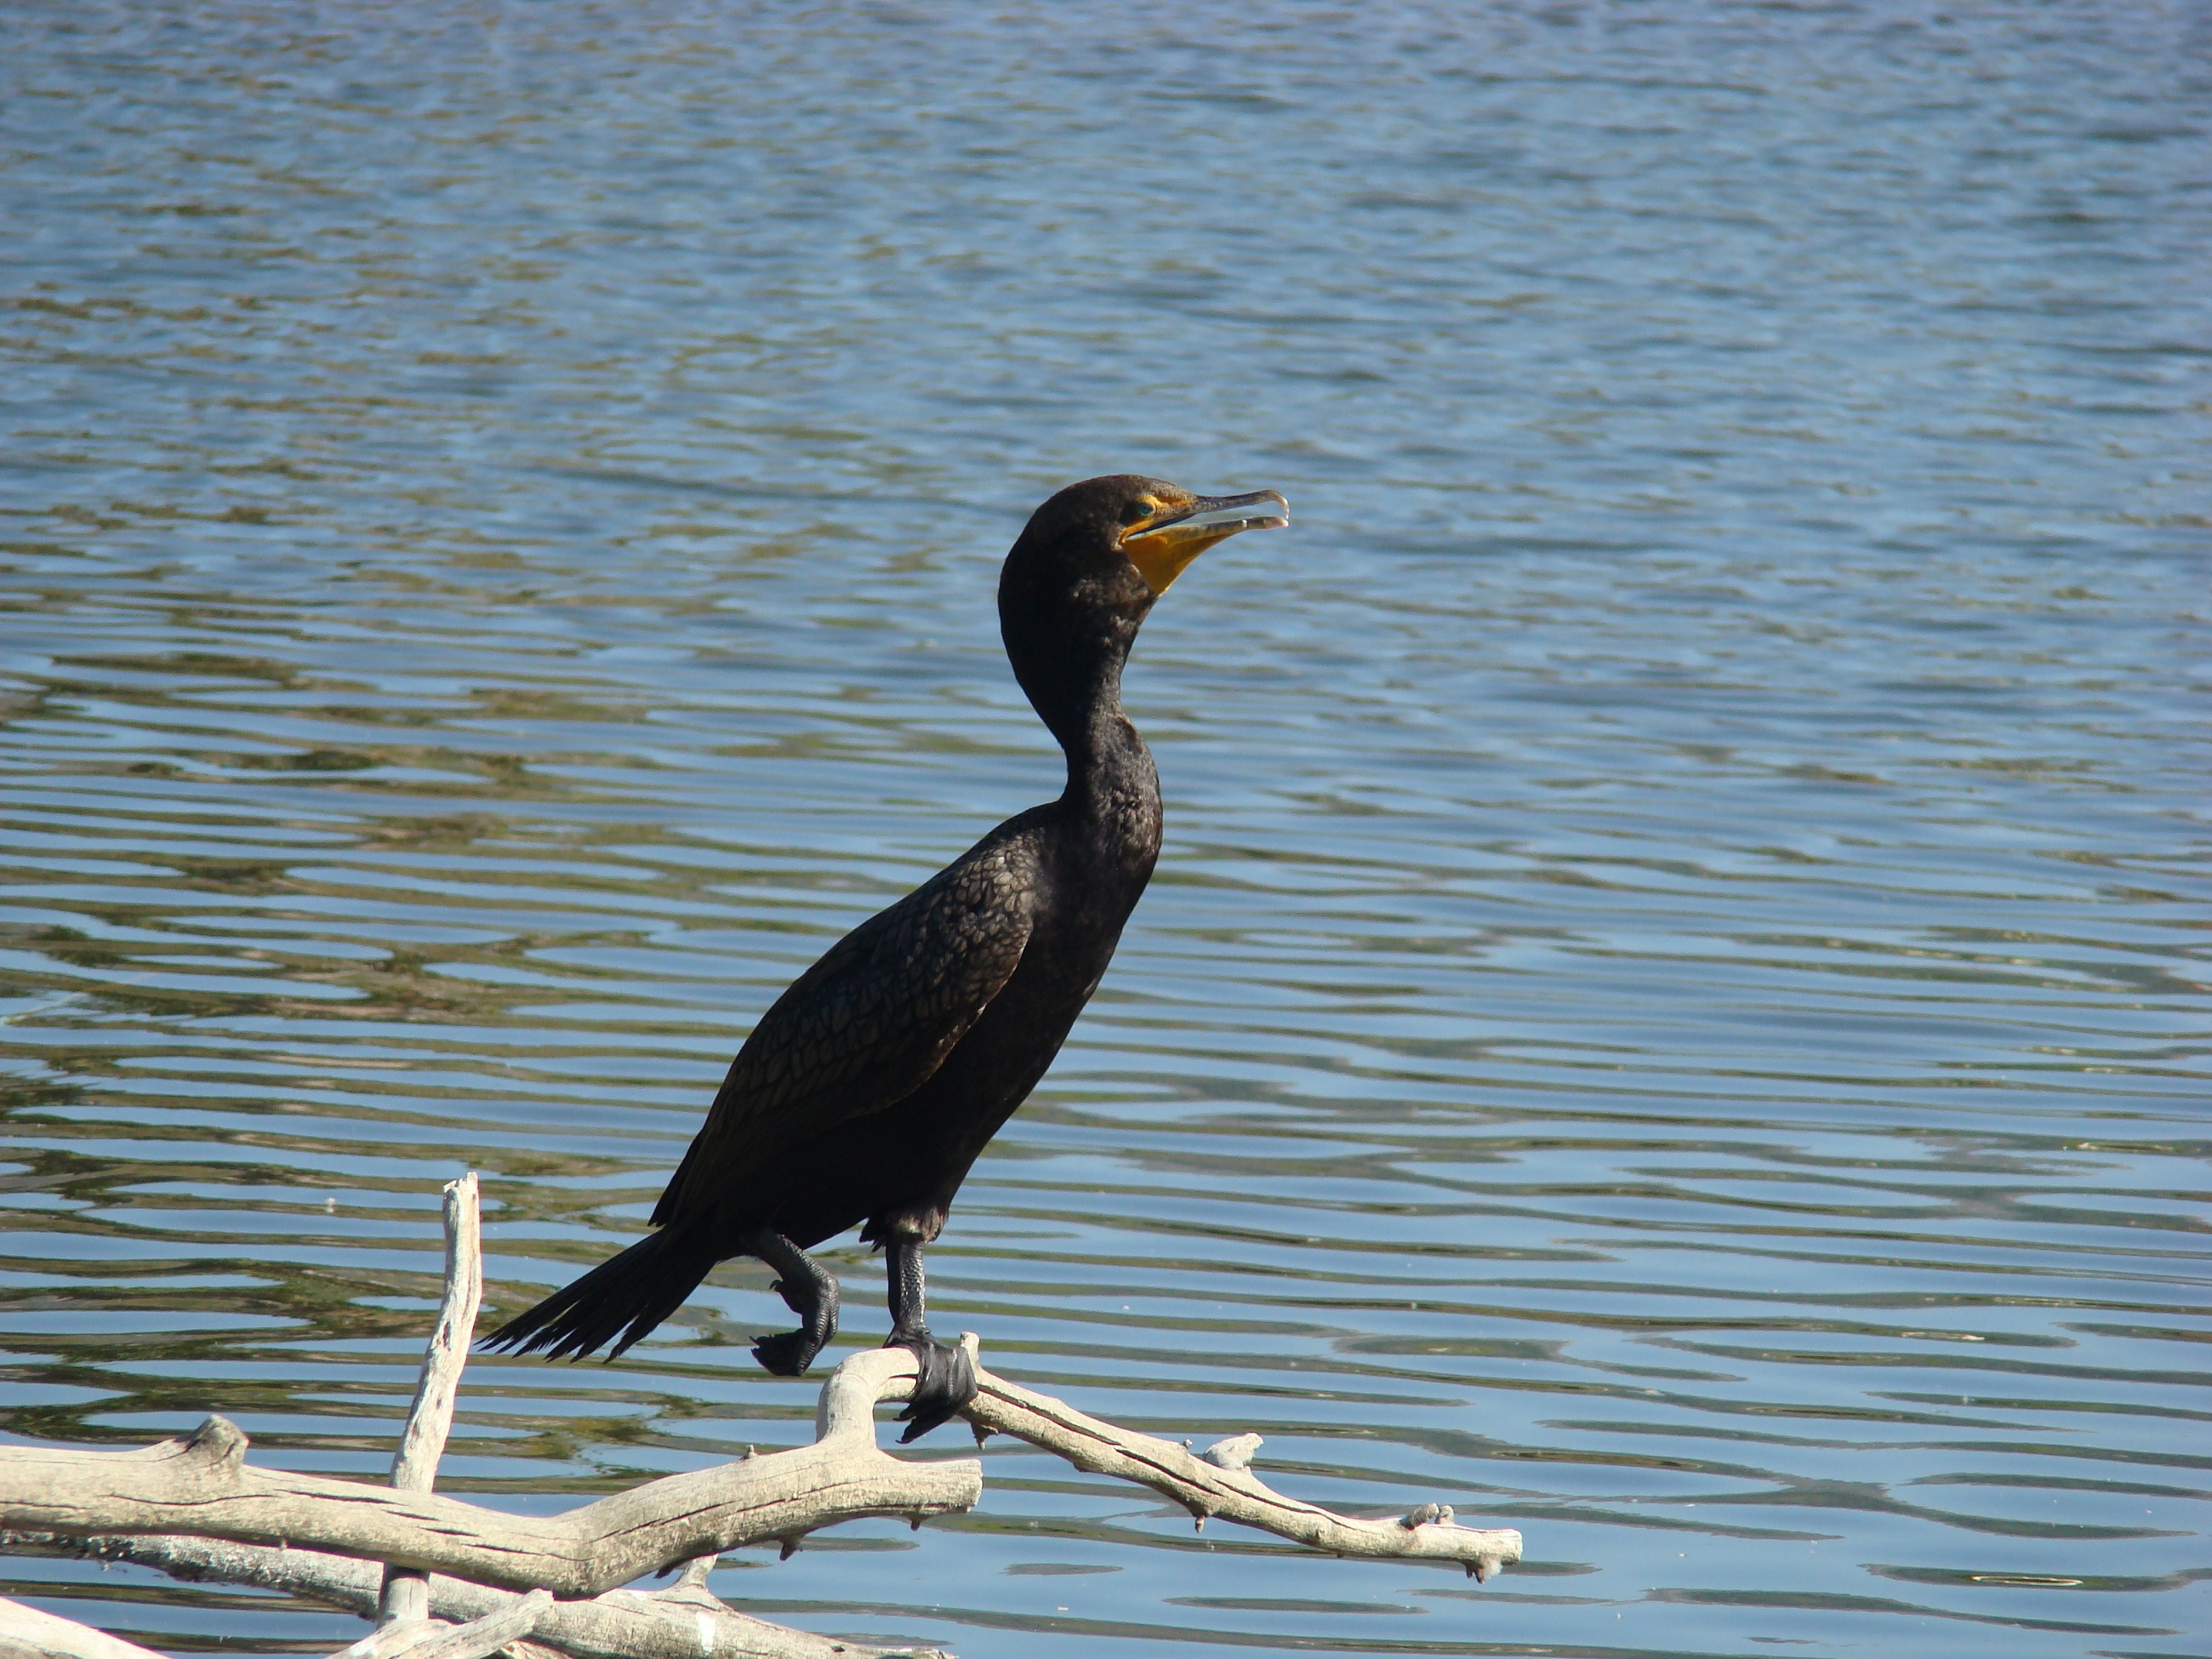 Double-crested cormorant shown perched near the water